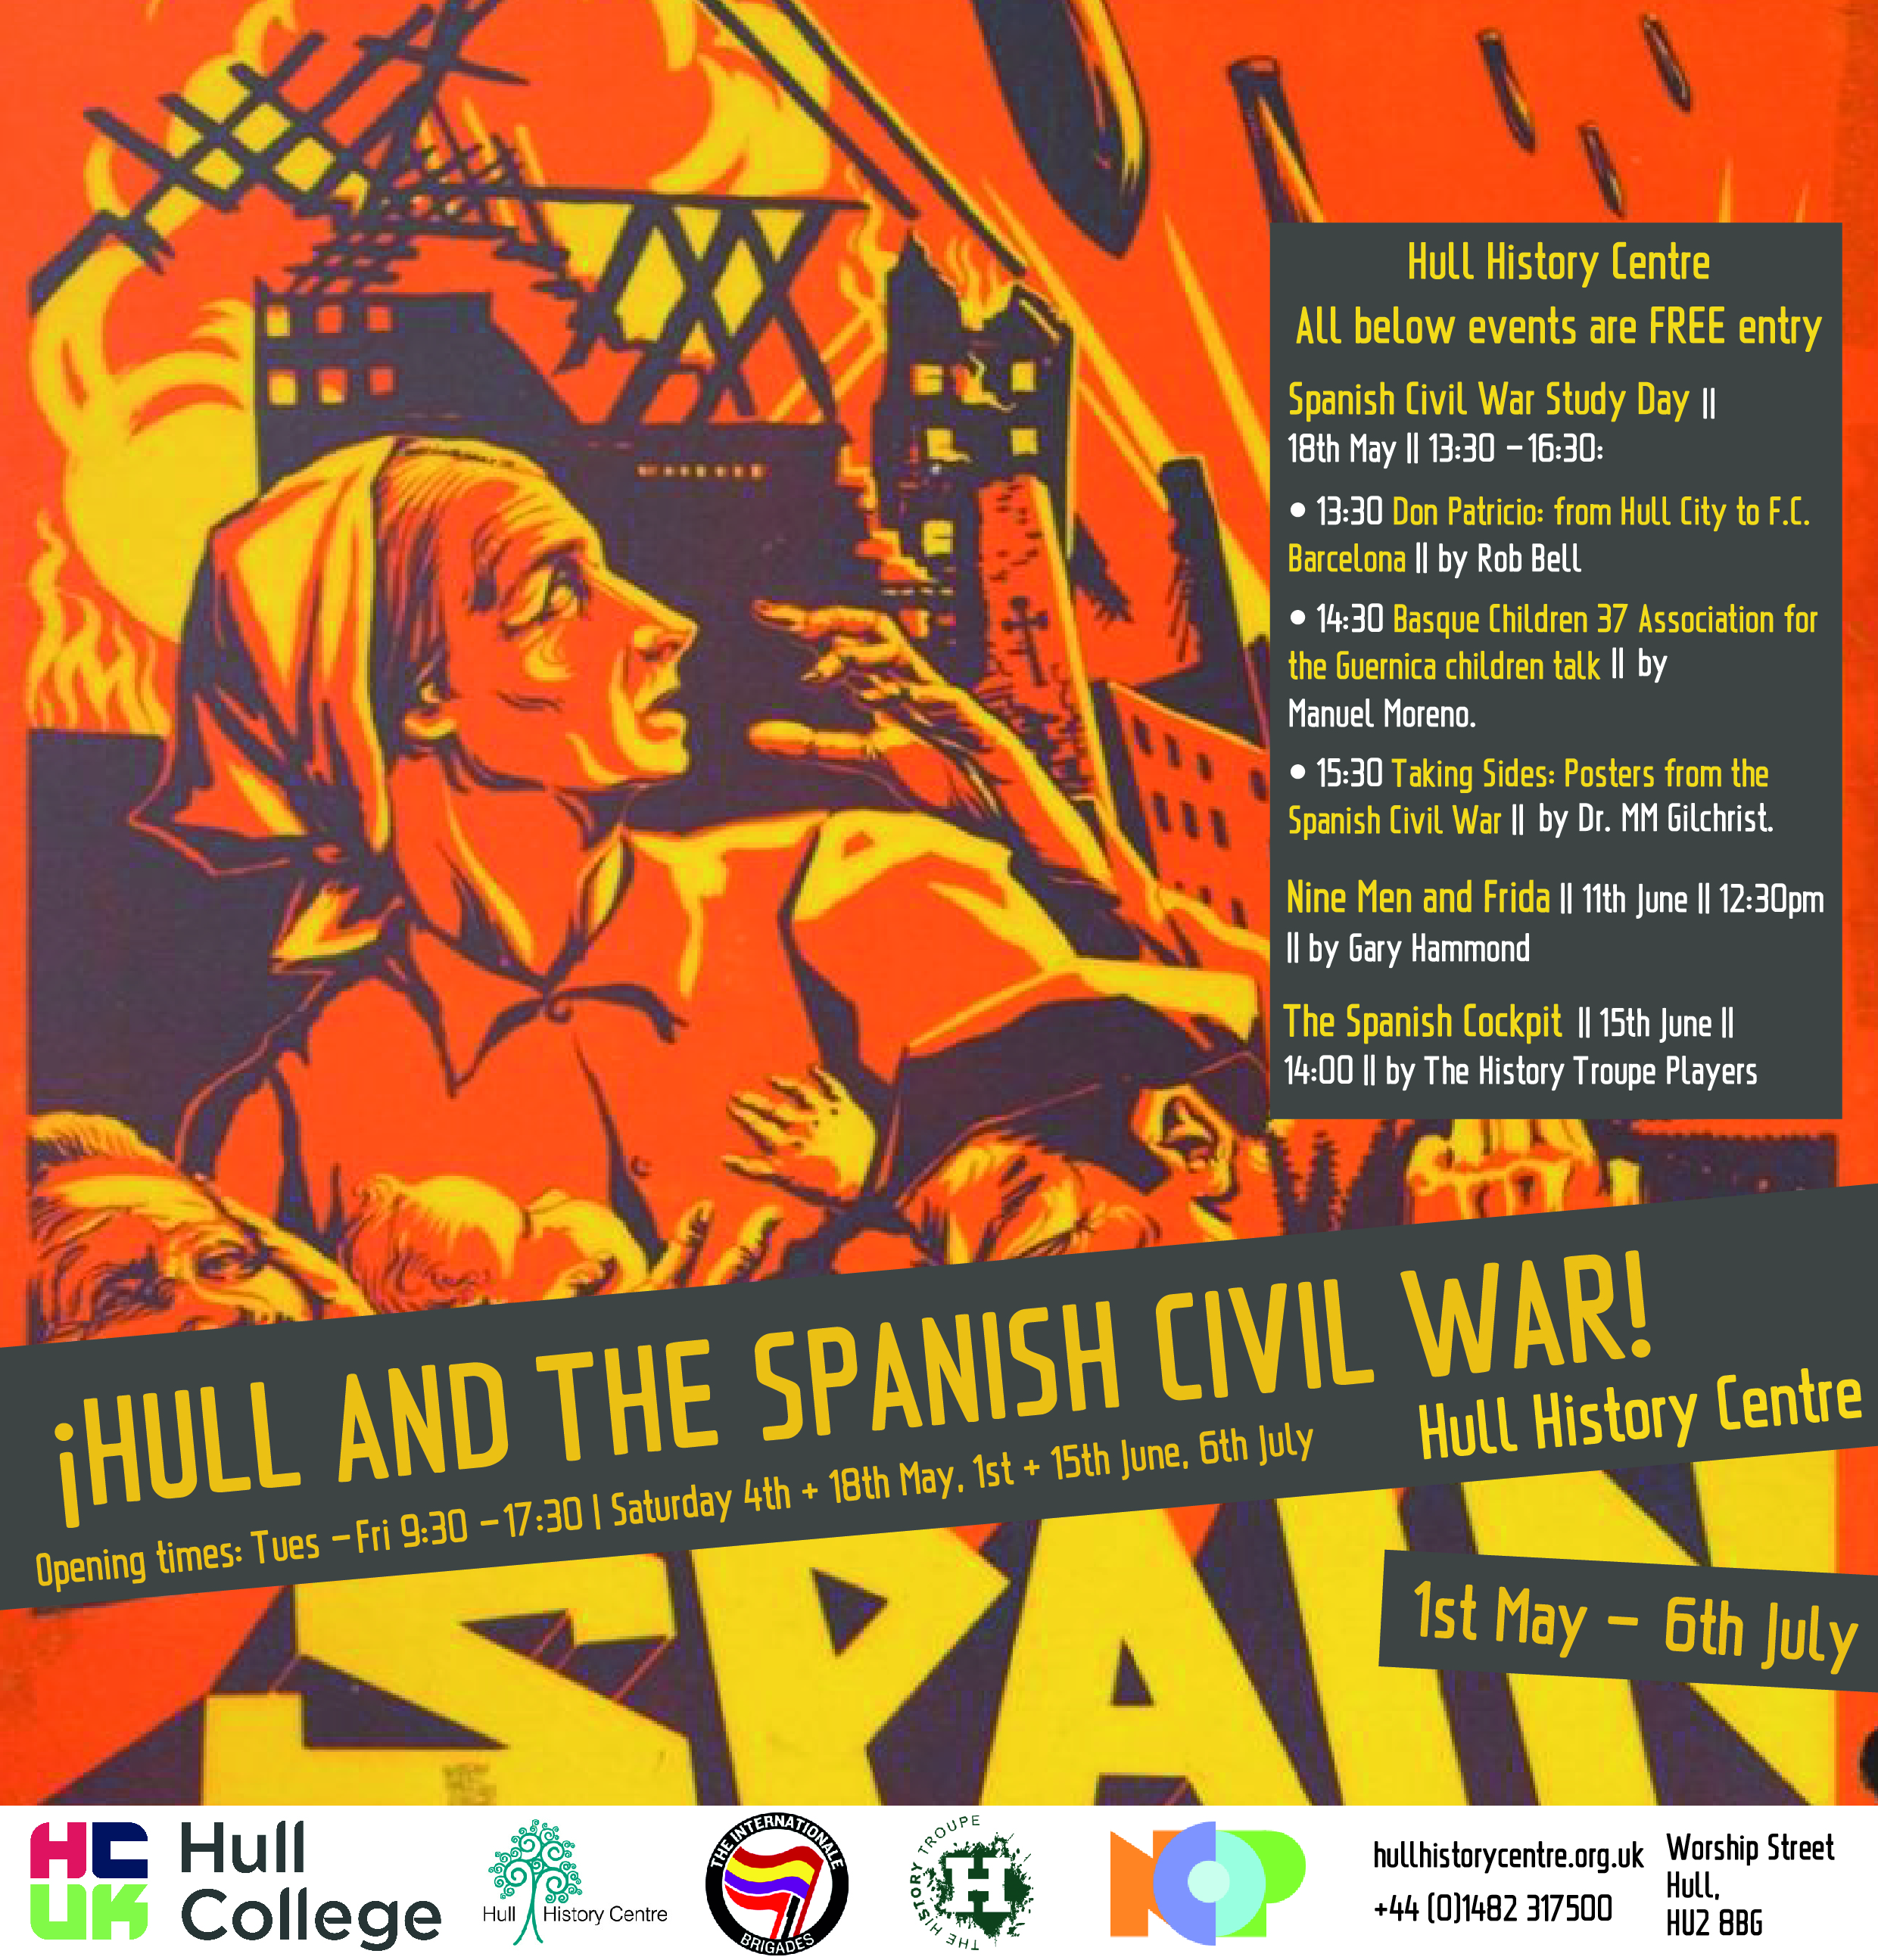 Hull and the Spanish Civil War HHC digital poster.jpg